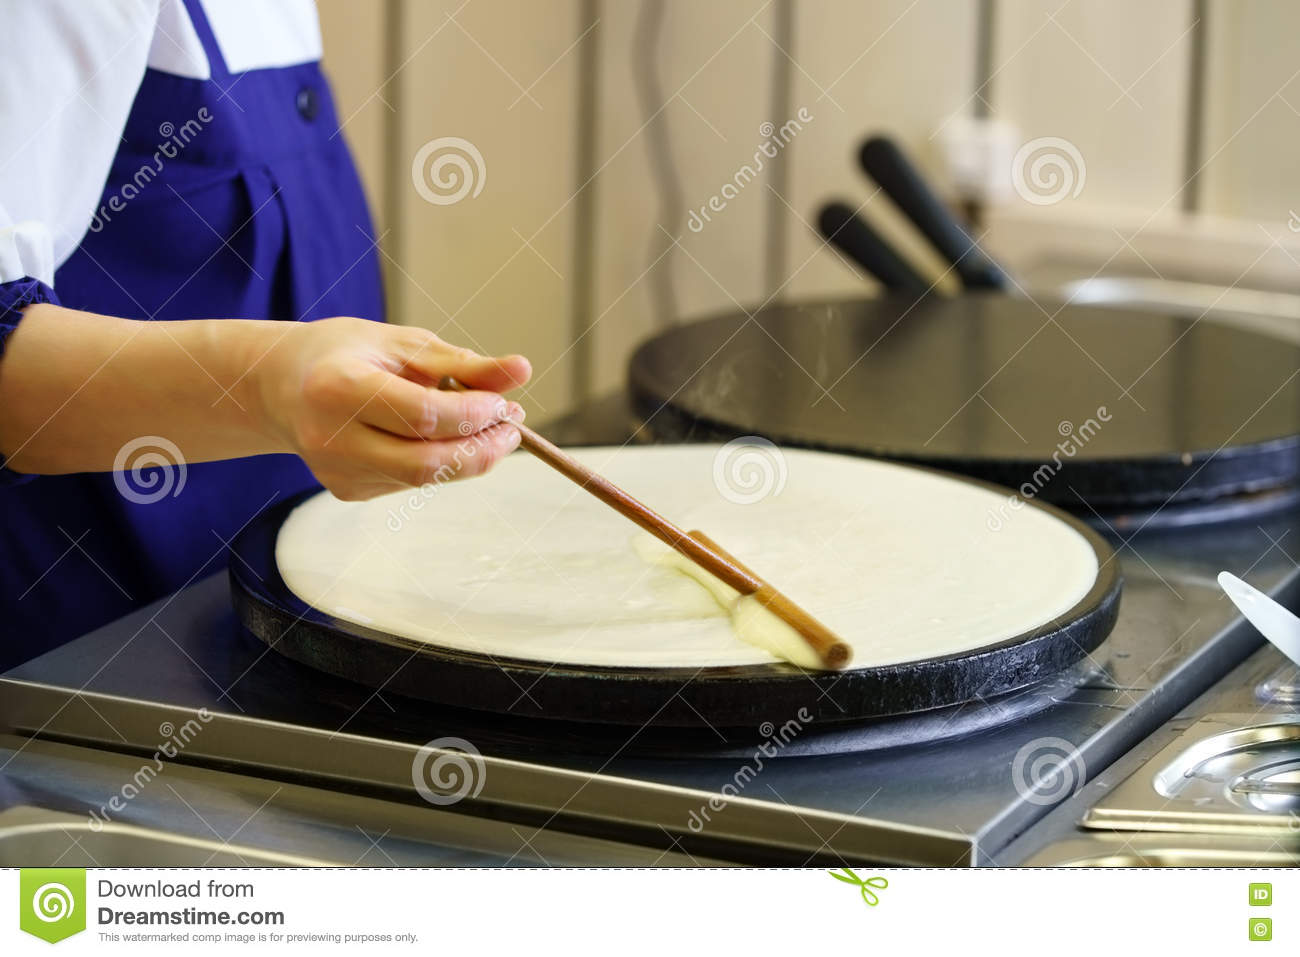 Close-up of cook frying crepe or pancake